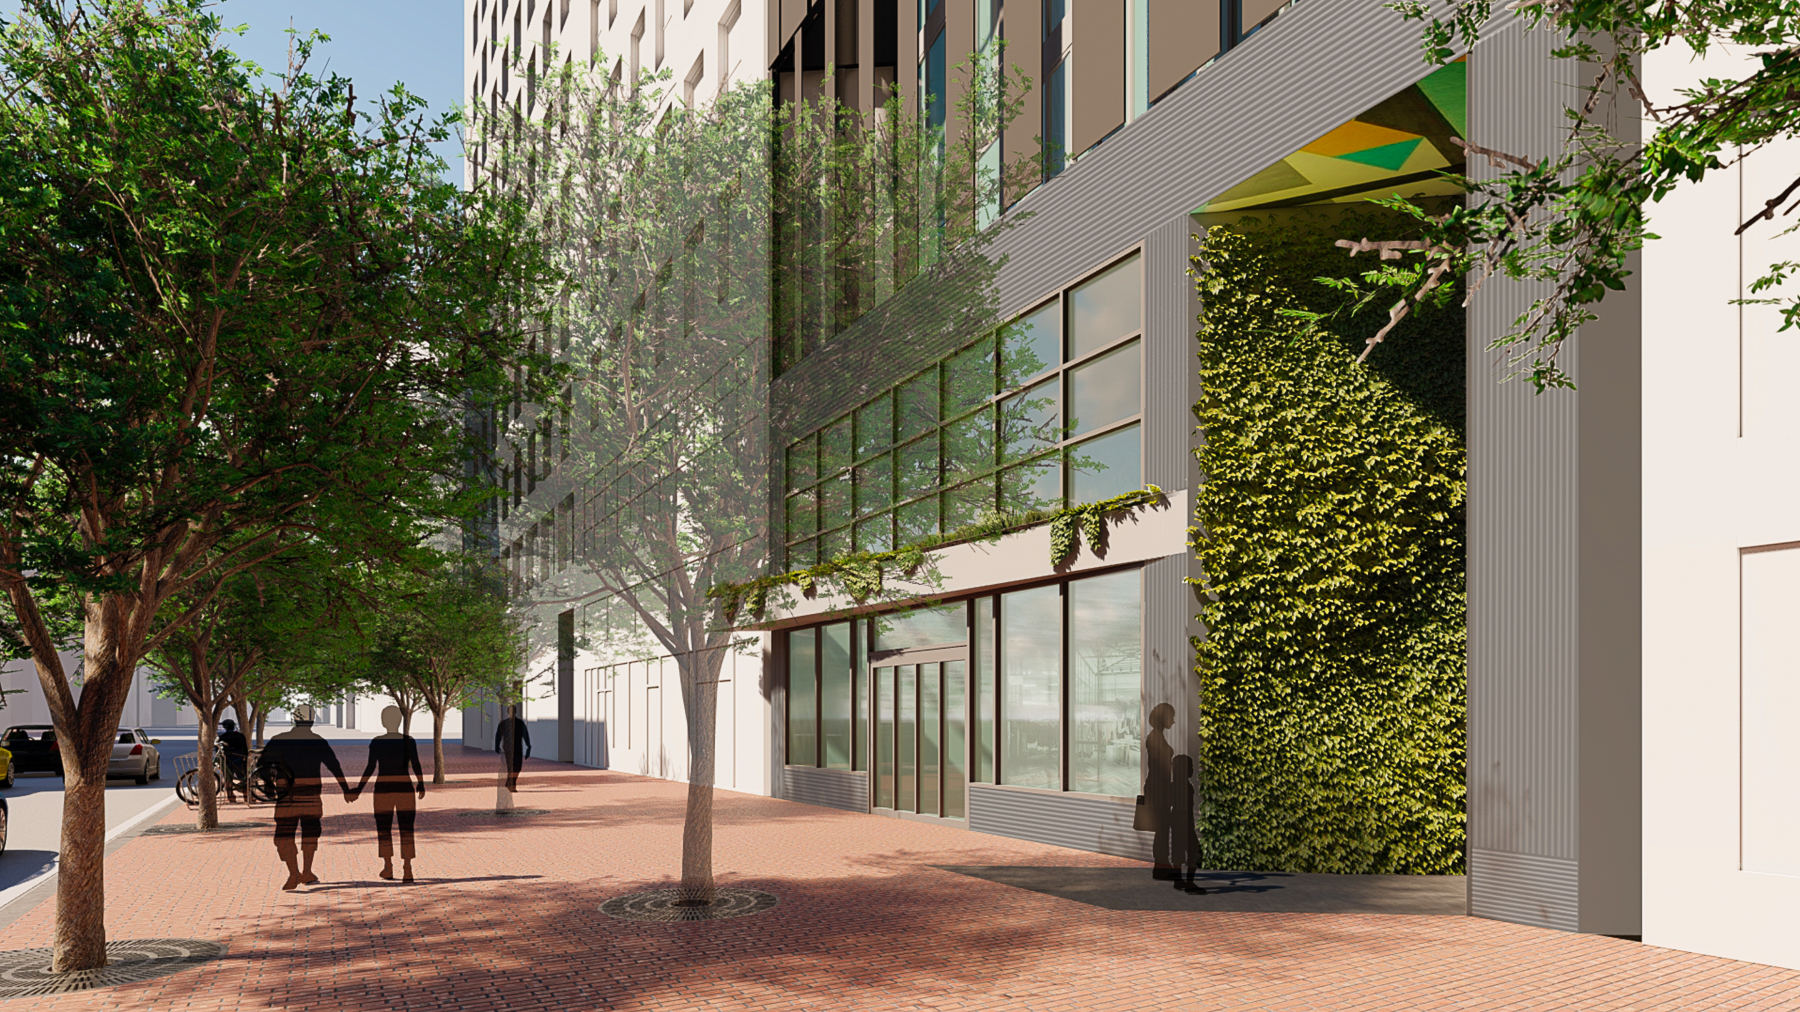 570 Market Street POPOS entrance, rendering by Danny Forster and Architecture